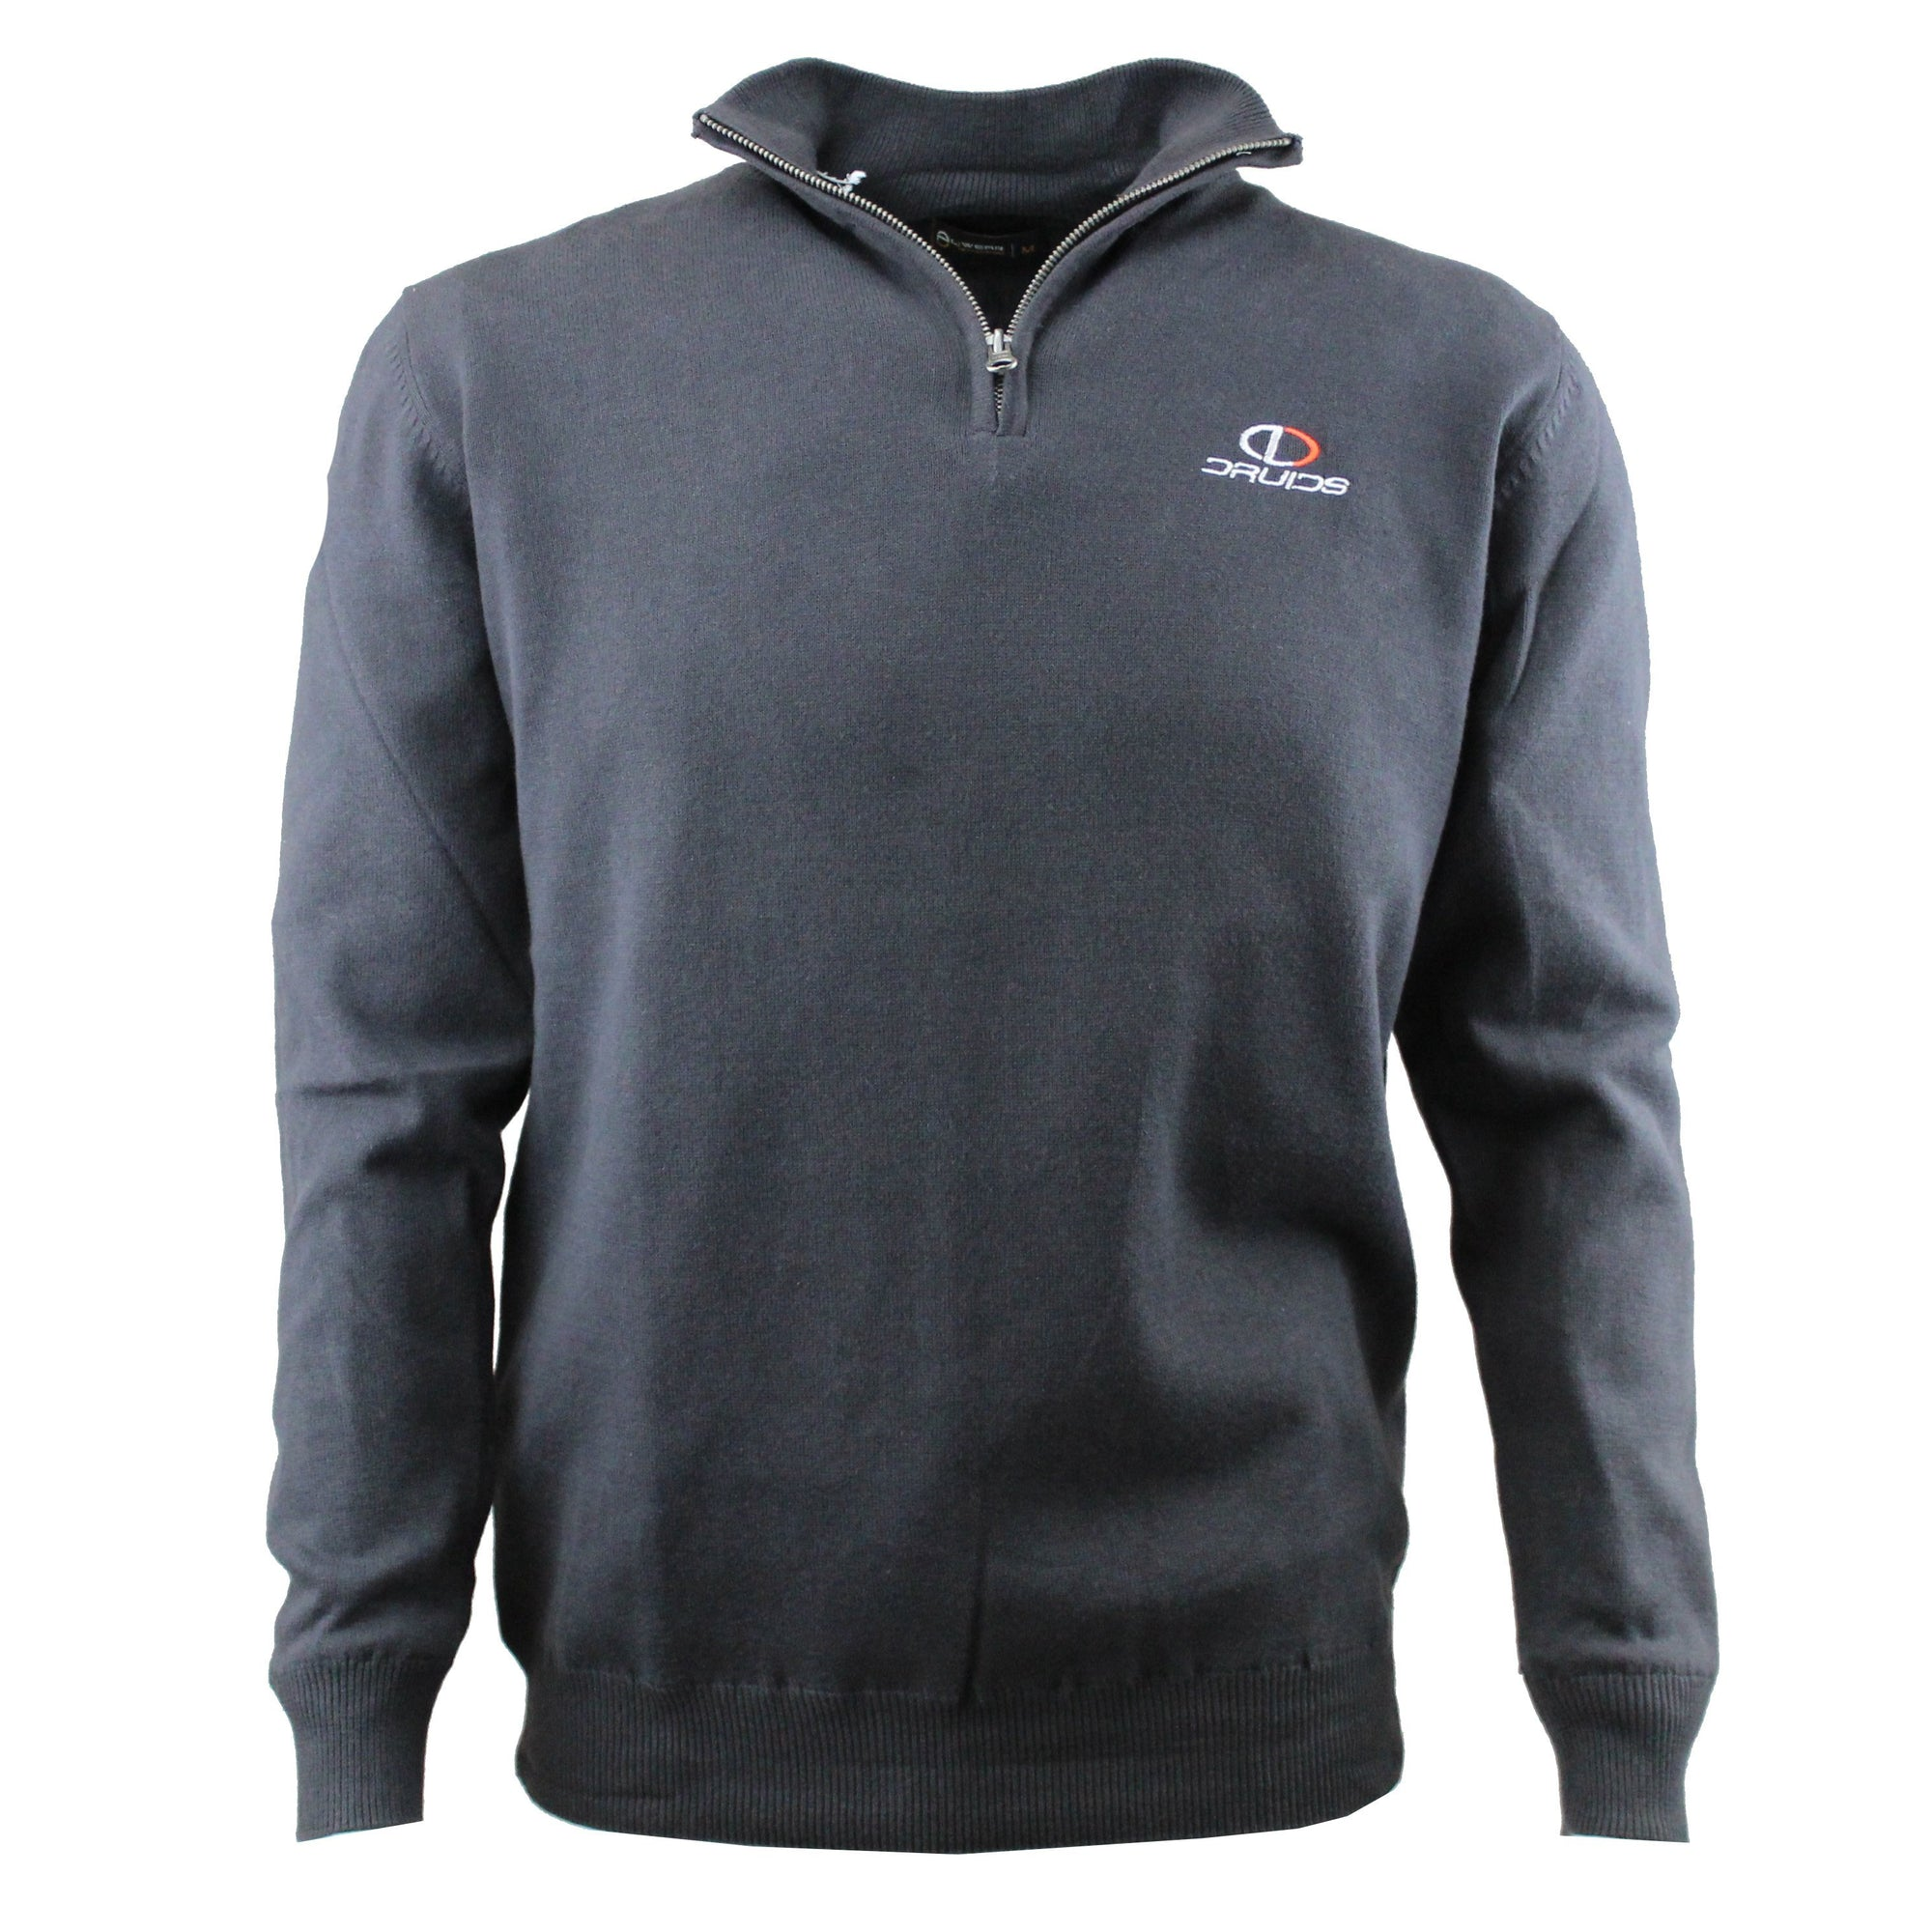 Druids Golf - Cotton Lined Sweater (Navy)